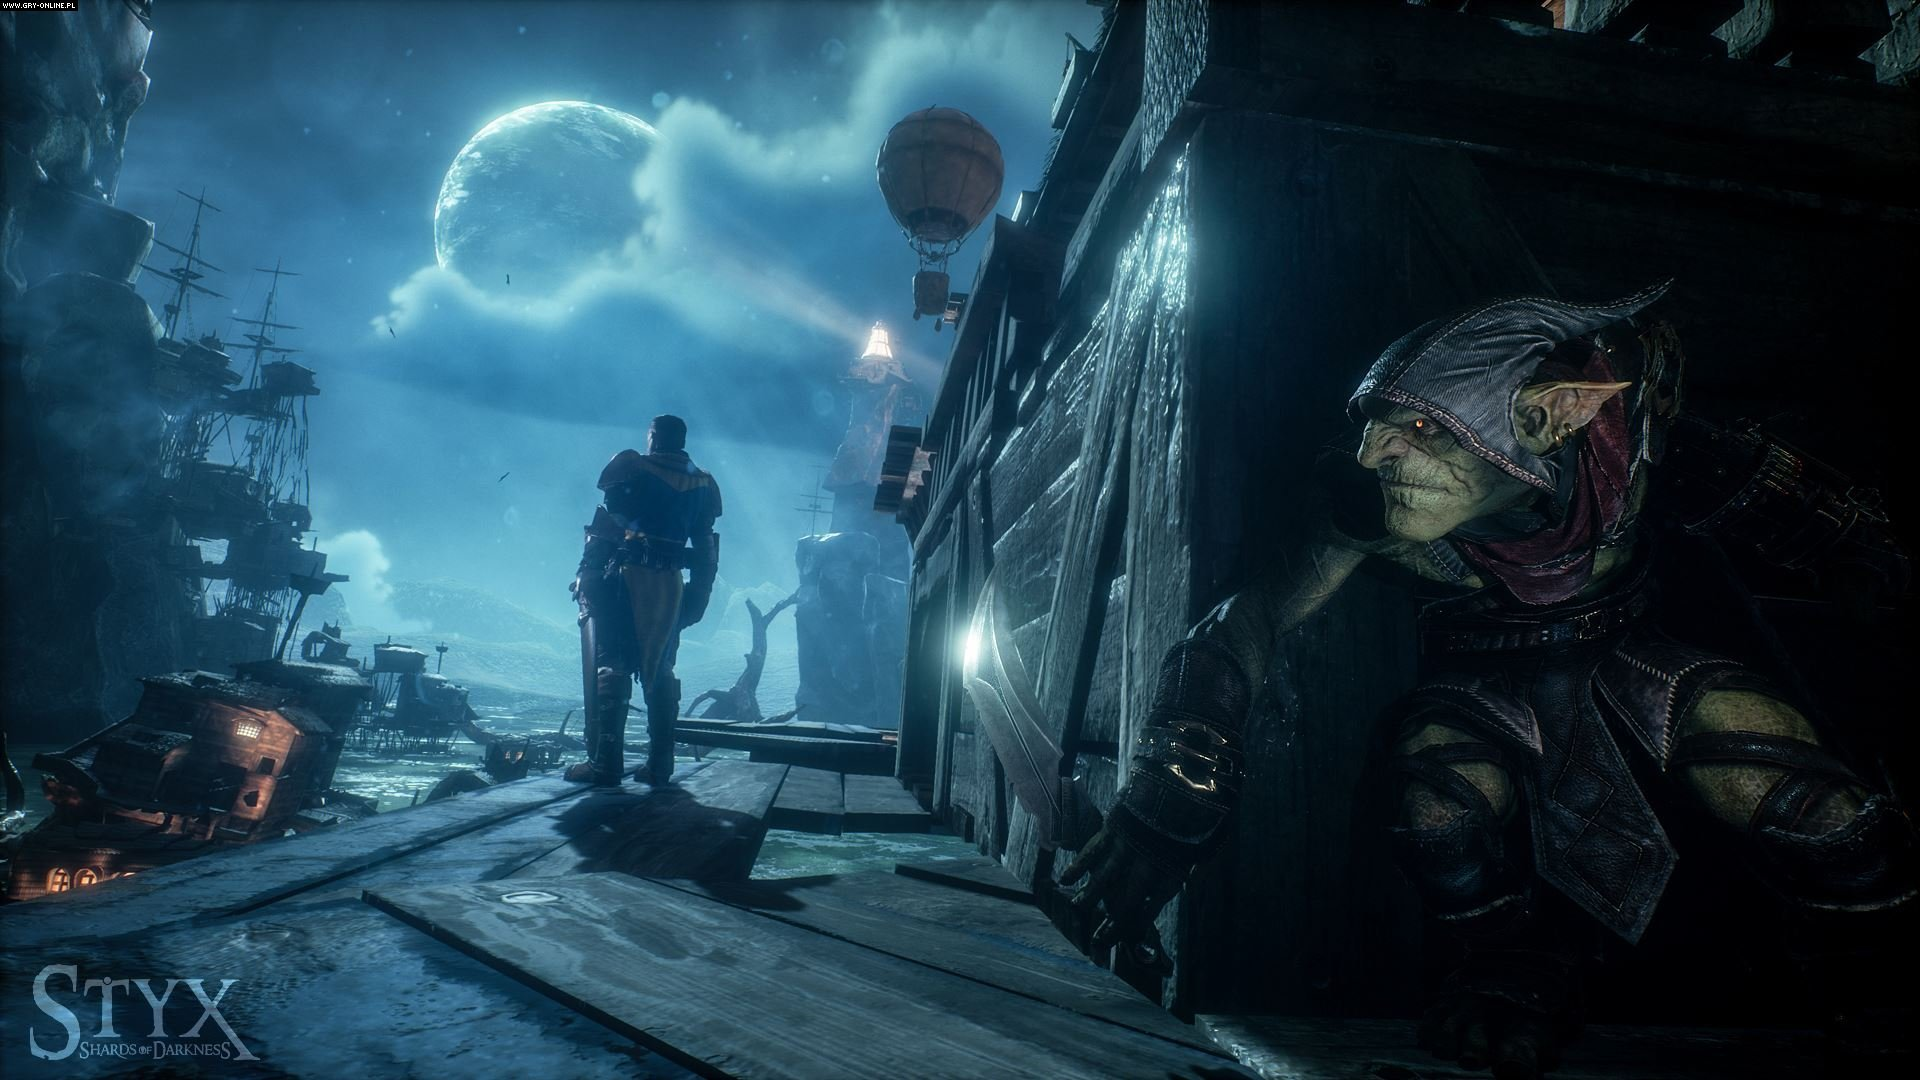 Styx: Shards of Darkness PC, XONE, PS4 Games Image 9/10, Cyanide Studio, Focus Home Interactive